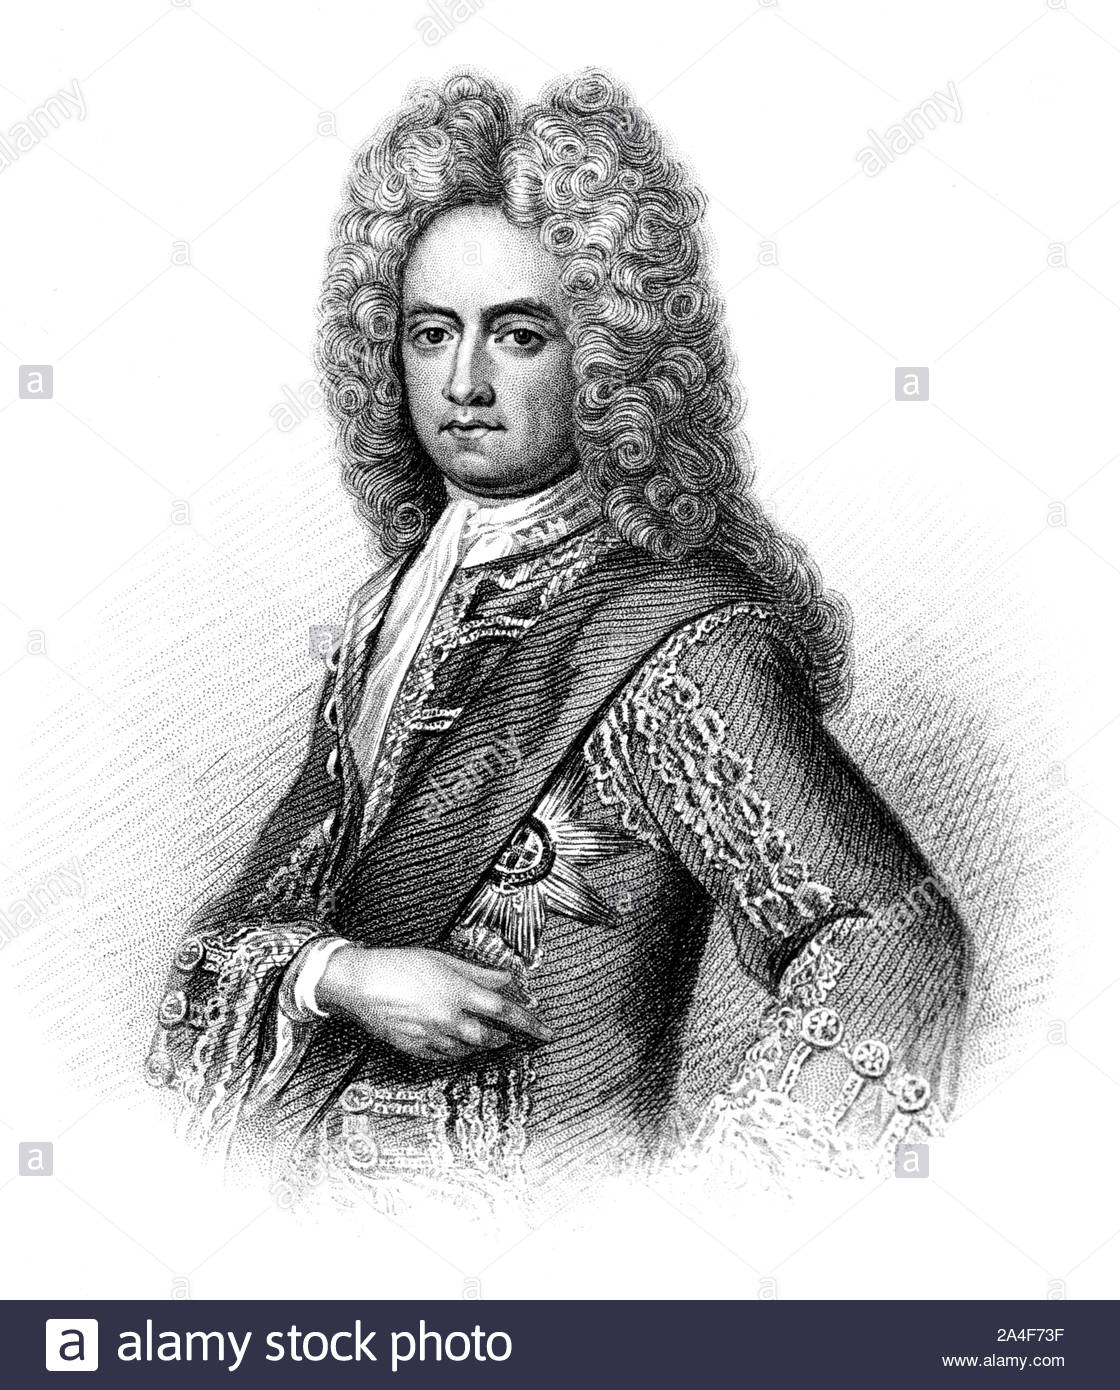 Charles Mordaunt portrait, 3rd Earl of Peterborough and 1st Earl of Monmouth, 1658 – 1735, was an English nobleman and military leader, vintage illustration form 1850 Stock Photo